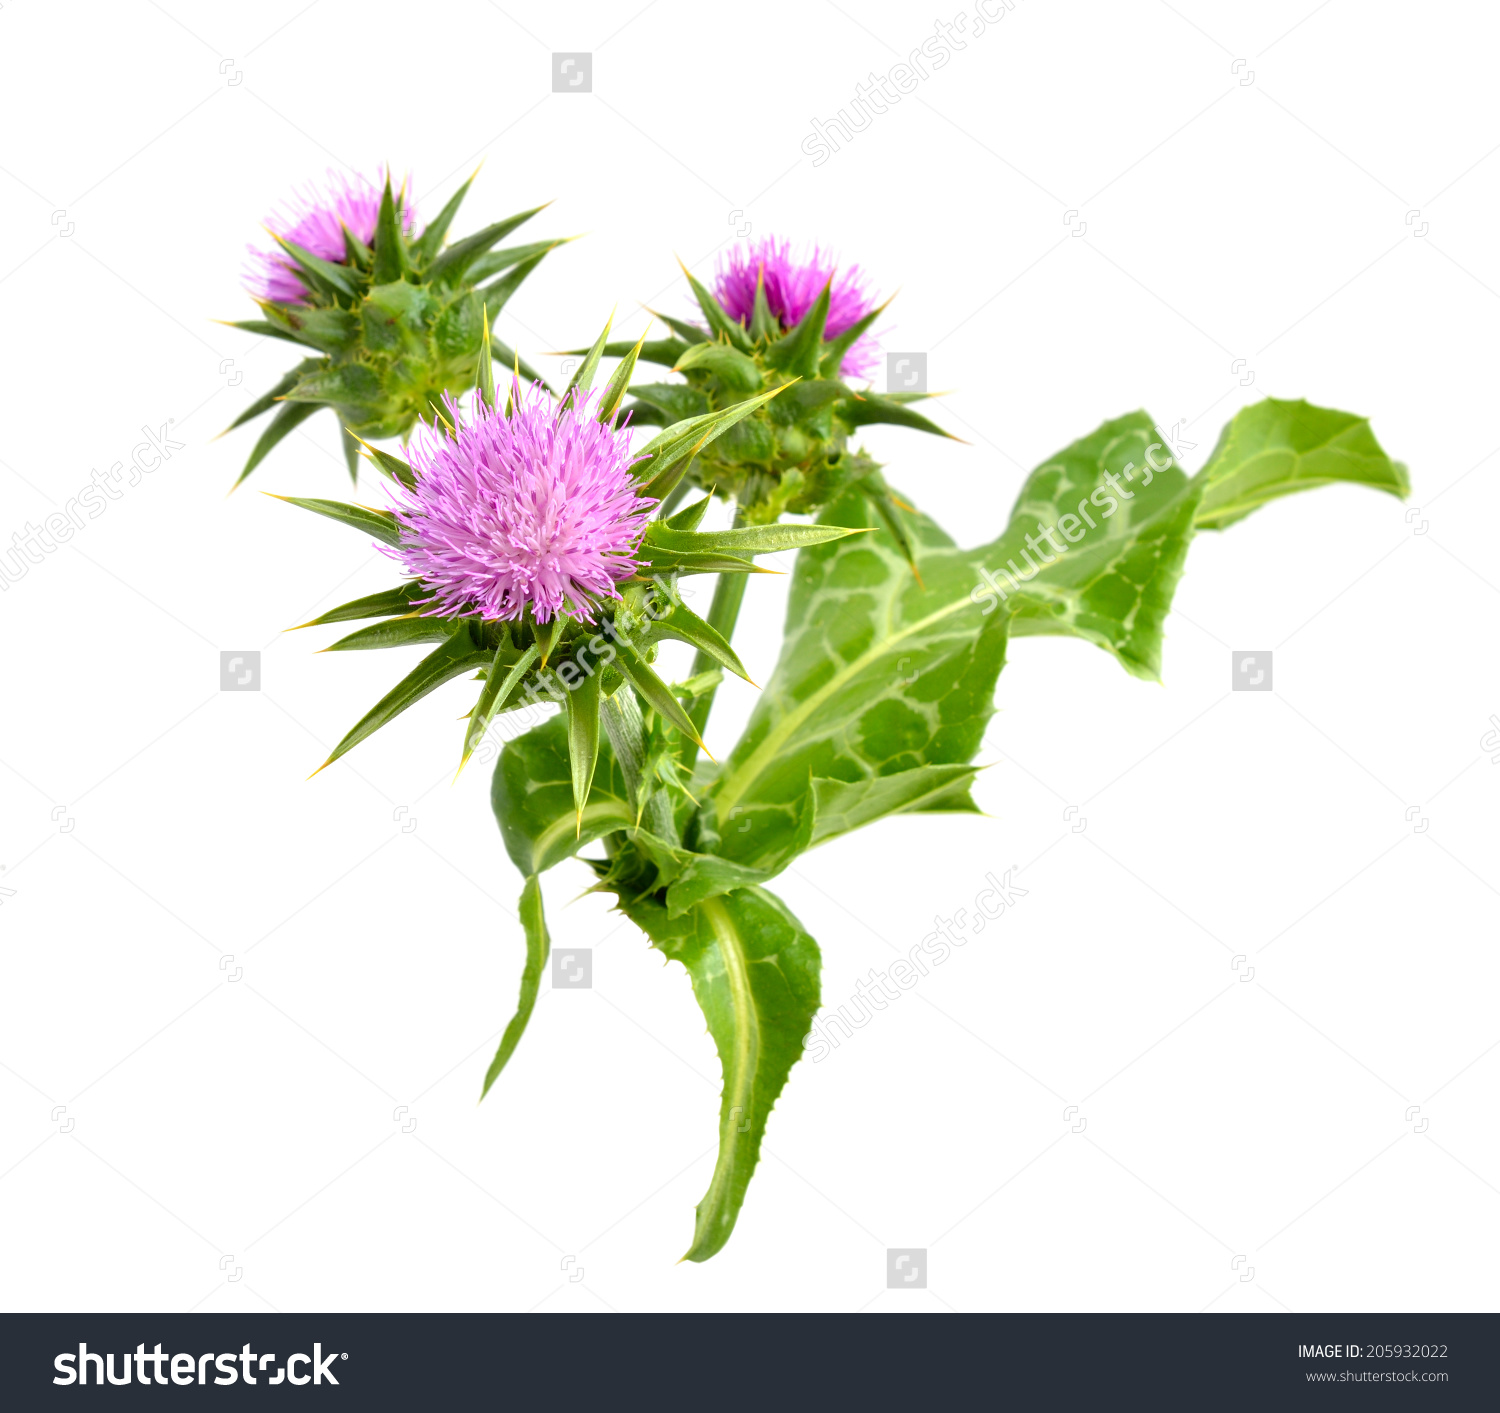 Silybum Marianum Cardus Marianus Milk Thistle Stock Photo.